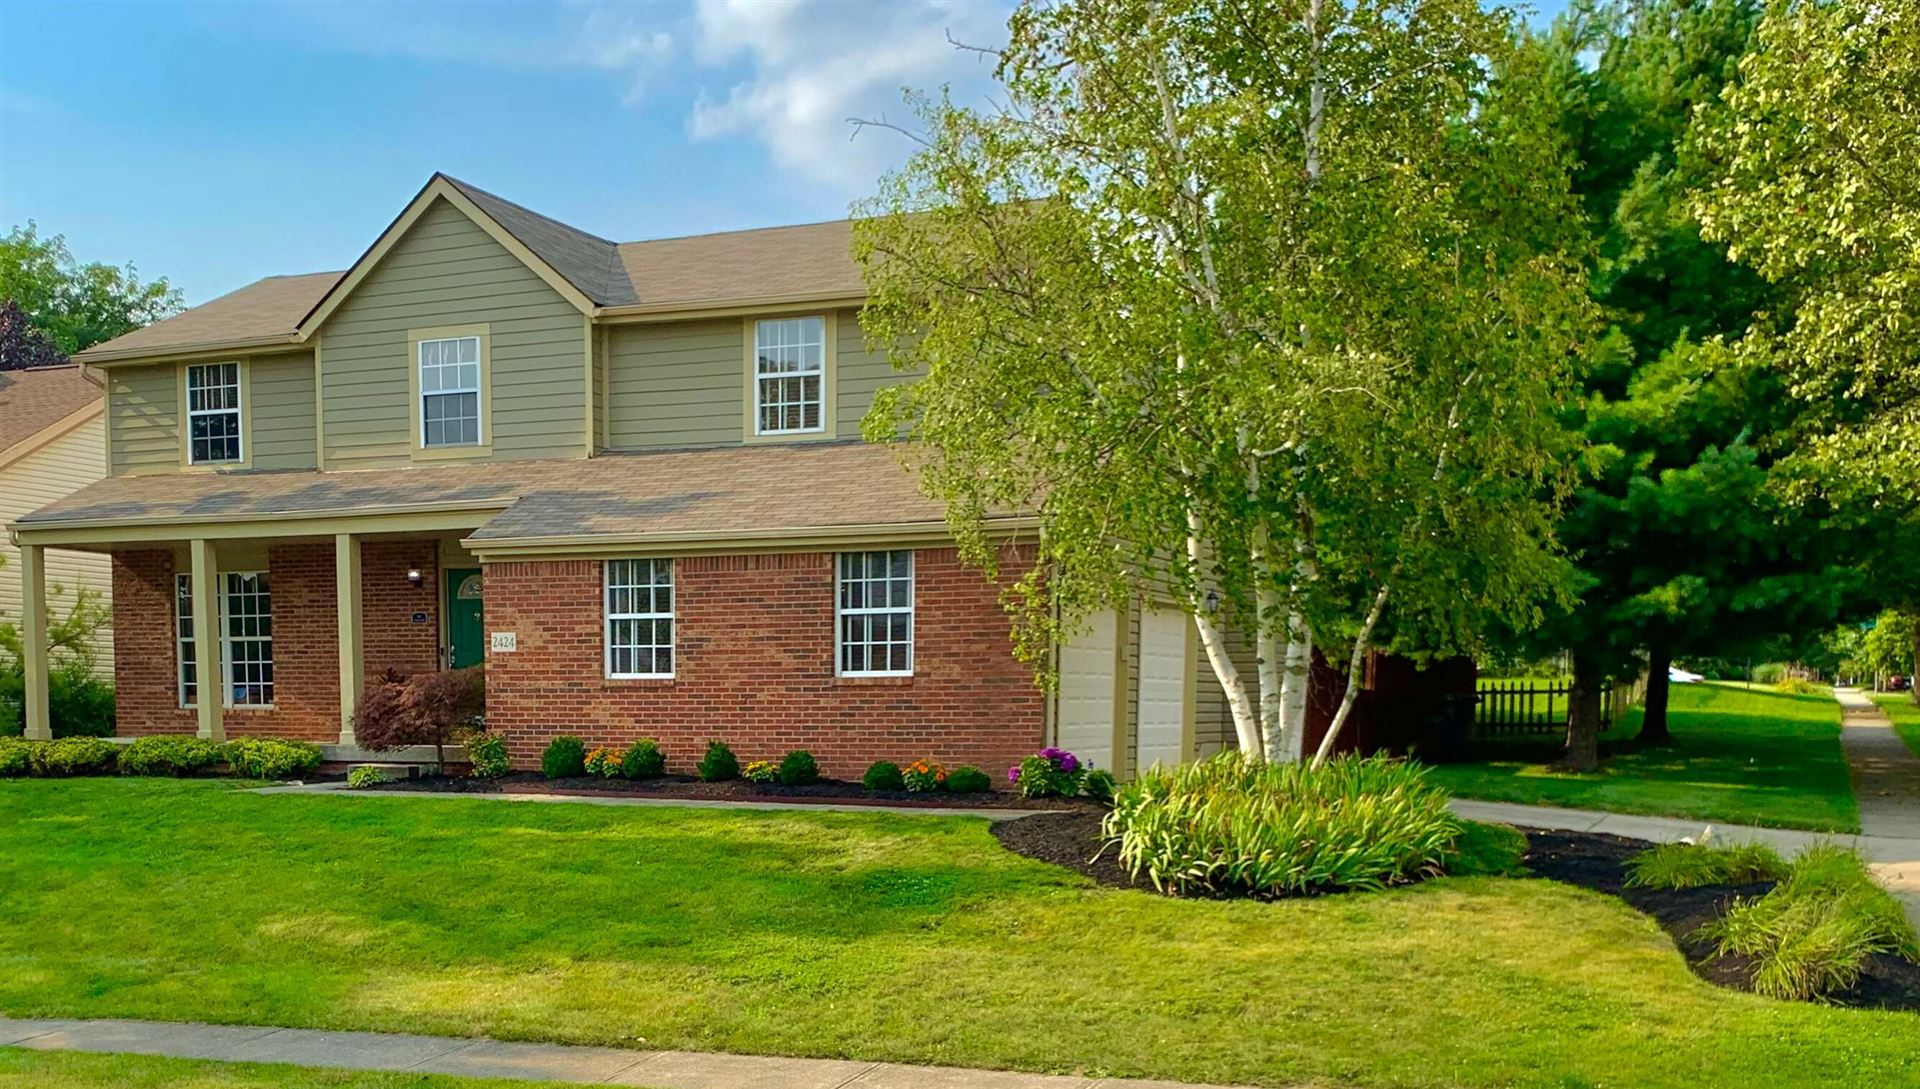 Photo of 2424 Shillingham Court, Powell, OH 43065 (MLS # 221028196)